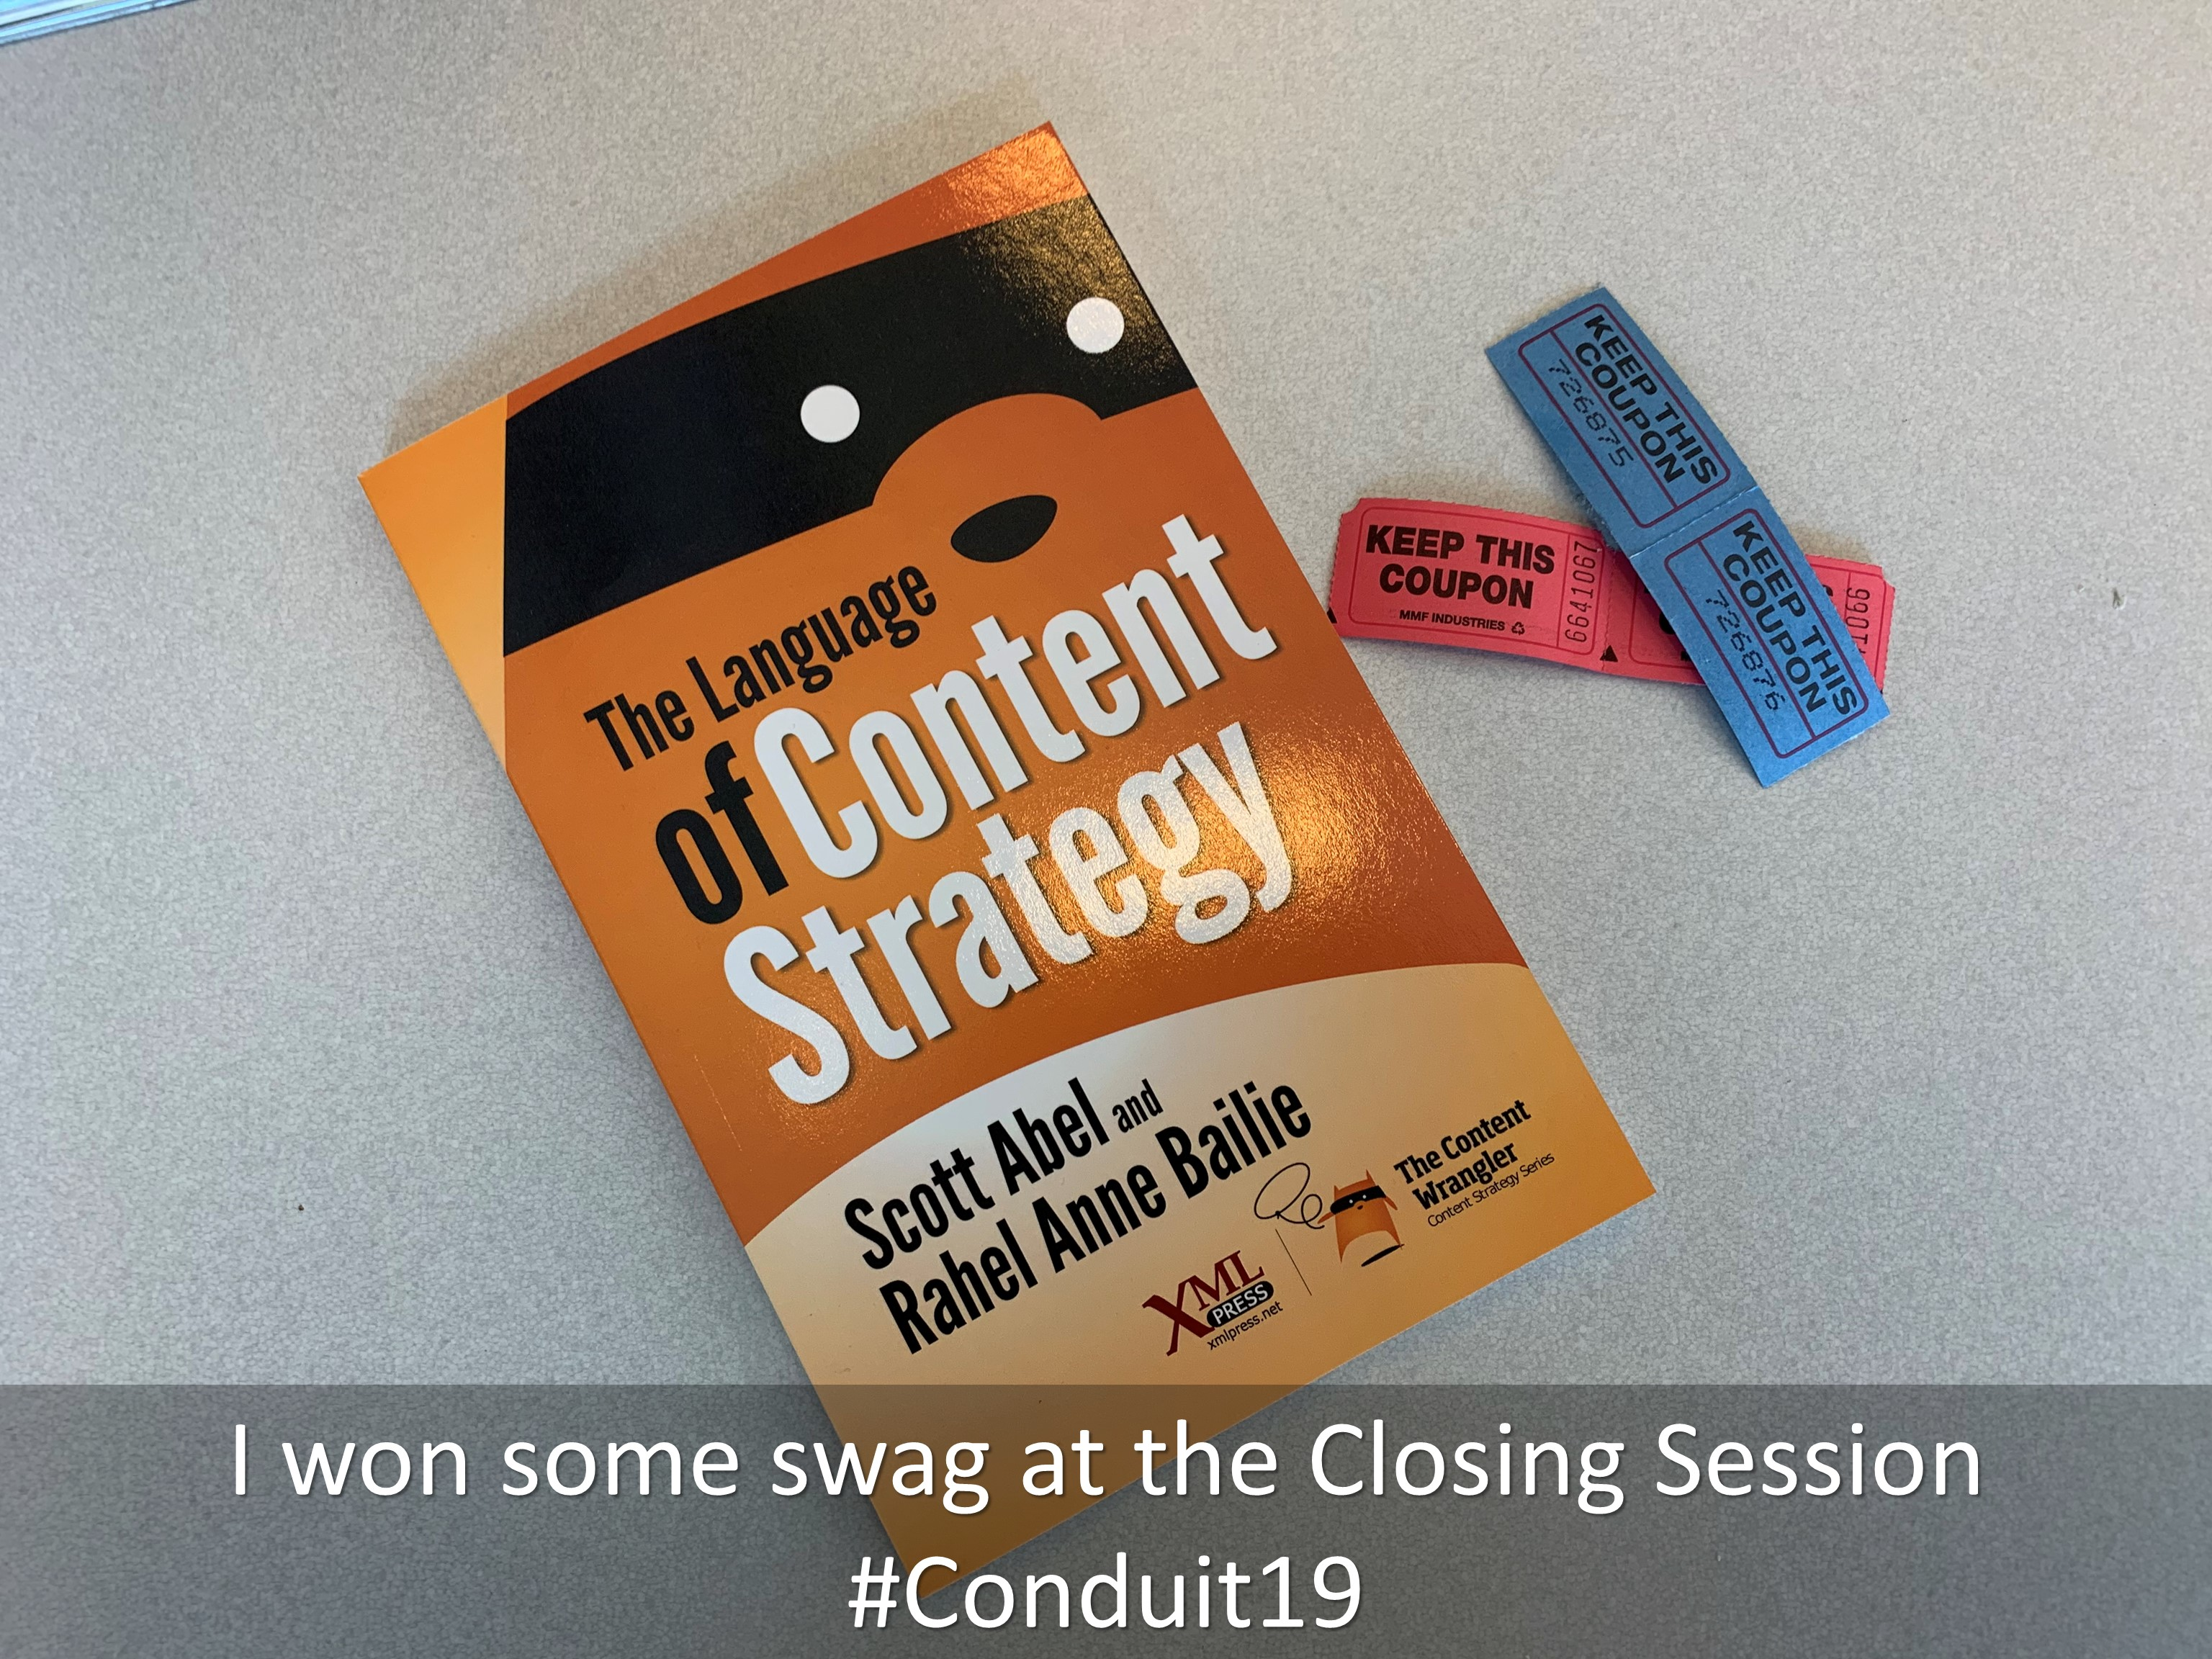 15 I won some swag at the Closing Session Conduit19